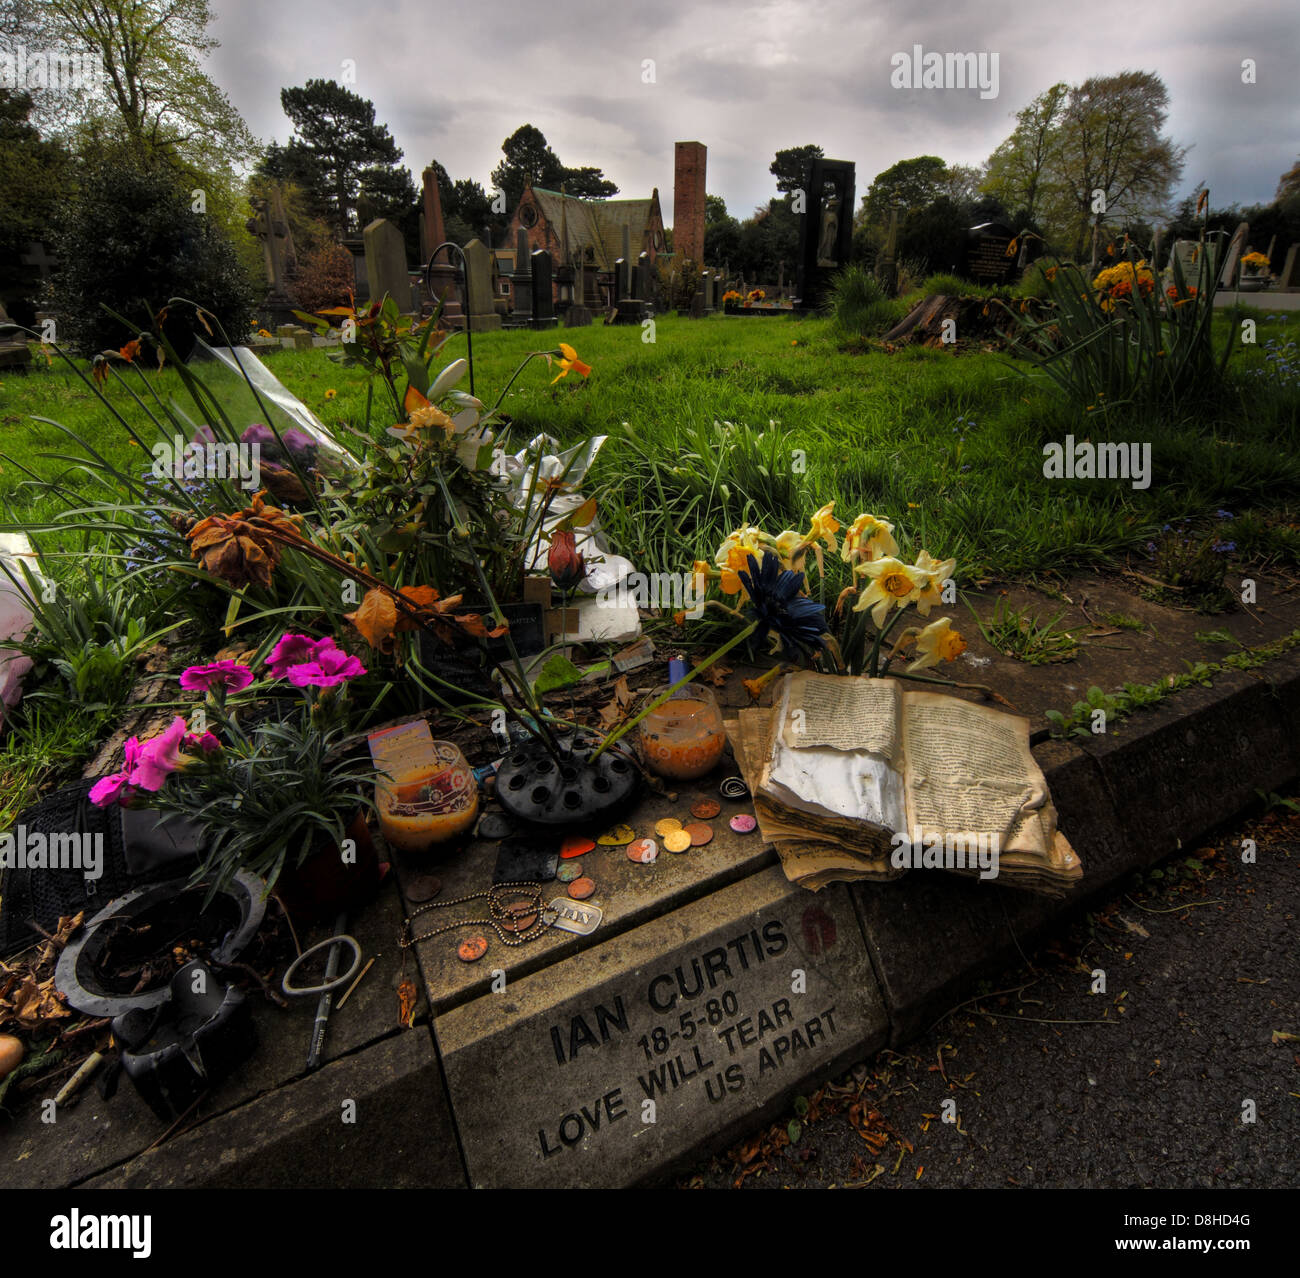 Macclesfield,Cemetary,IanCurtis,singer,vocalist,of,Manchester,Joy,Division,Rock,Band,died,18-5-80,inscription,flower,tribute,tributes,JD,18/05/1980,1980,May,18,18th,new,wave,england,english,NW,Factory,records,died,death,suicide,control,film,movie,Kevin,act,tomb,tombstone,musician,dead,musicians,gotonysmith,flowers,sombre,record,tony,wilson,New,order,neworder,ideal,for,living,EP,Atmosphere,24,hour,24hour,party,people,Bernard,Sumner,and,Peter,Hook,label,epileptic,seizures,famous,deceased,urban,decay,tourist,tourism,things,to,see,in,Martin,Hannett,Debbie,shrine,place,of,pilgrimage,Anton,Corbijn,Buy Pictures of,Buy Images Of